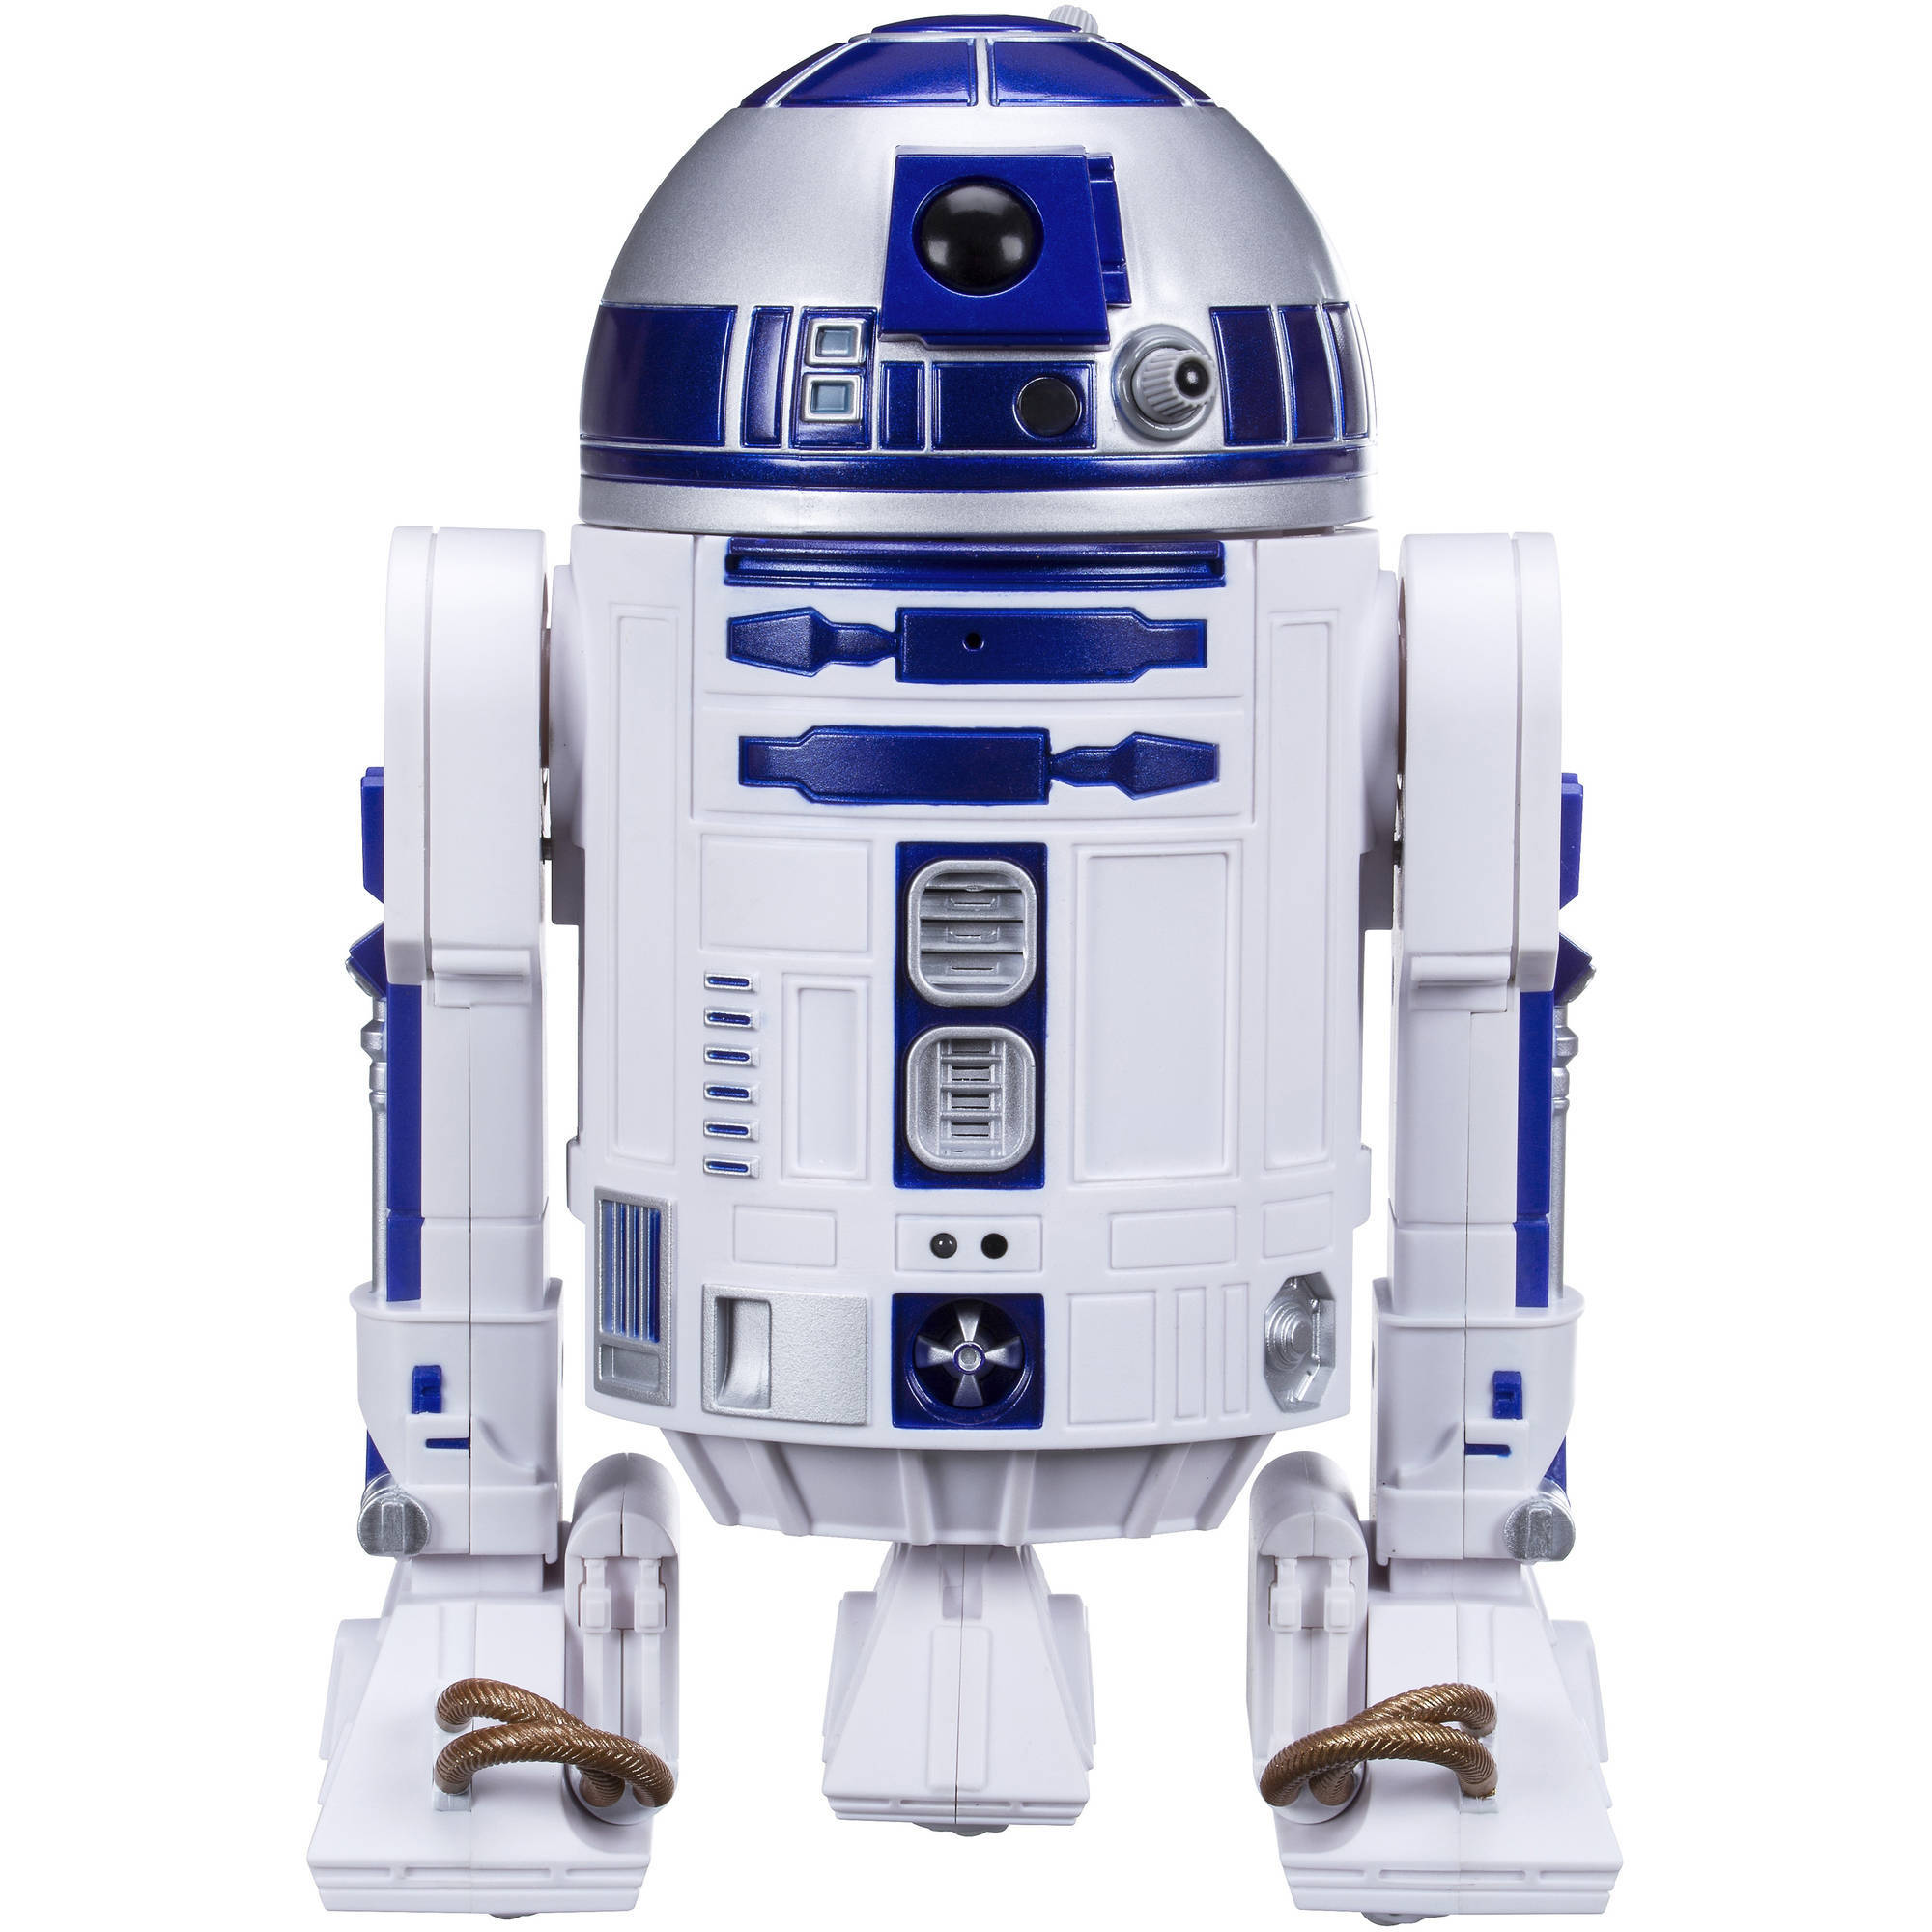 Star Wars Smart R2-D2 Walmart Exclusive Image 1 of 2